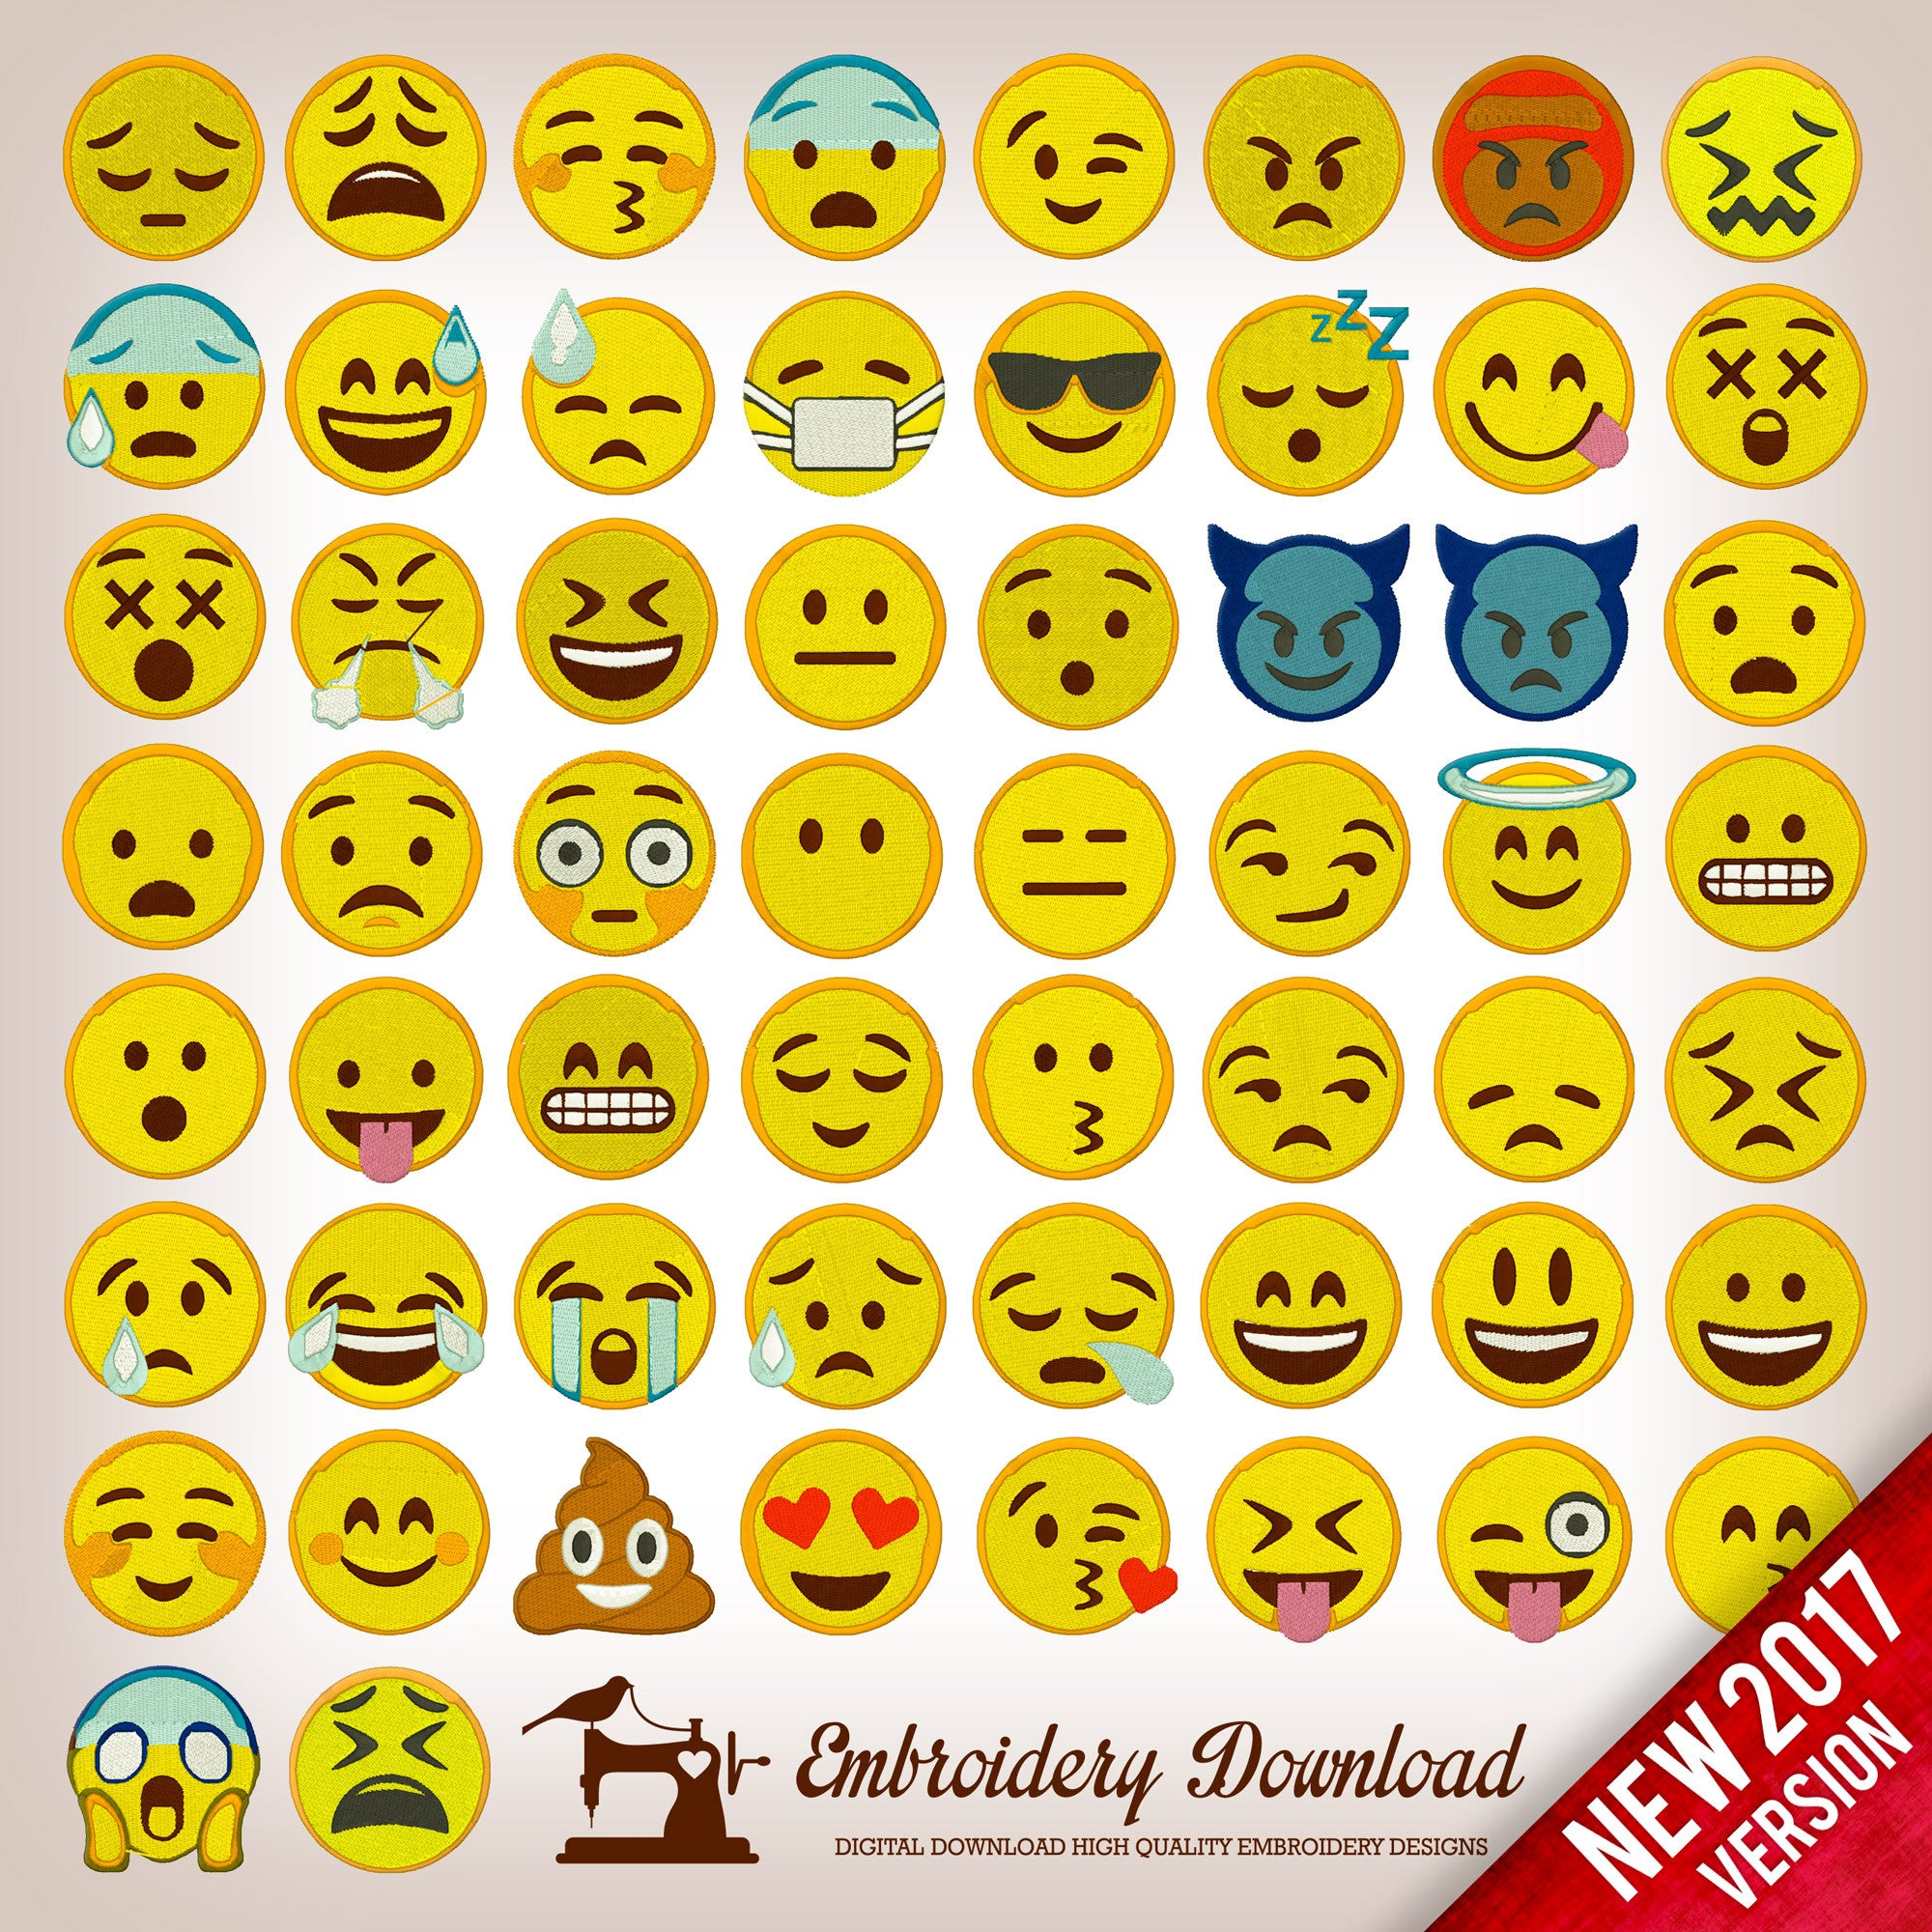 Embroidery designs emoticons emoji pack 58 designs instant download emoticons emoji pack 58 collection embroidery design download buycottarizona Images